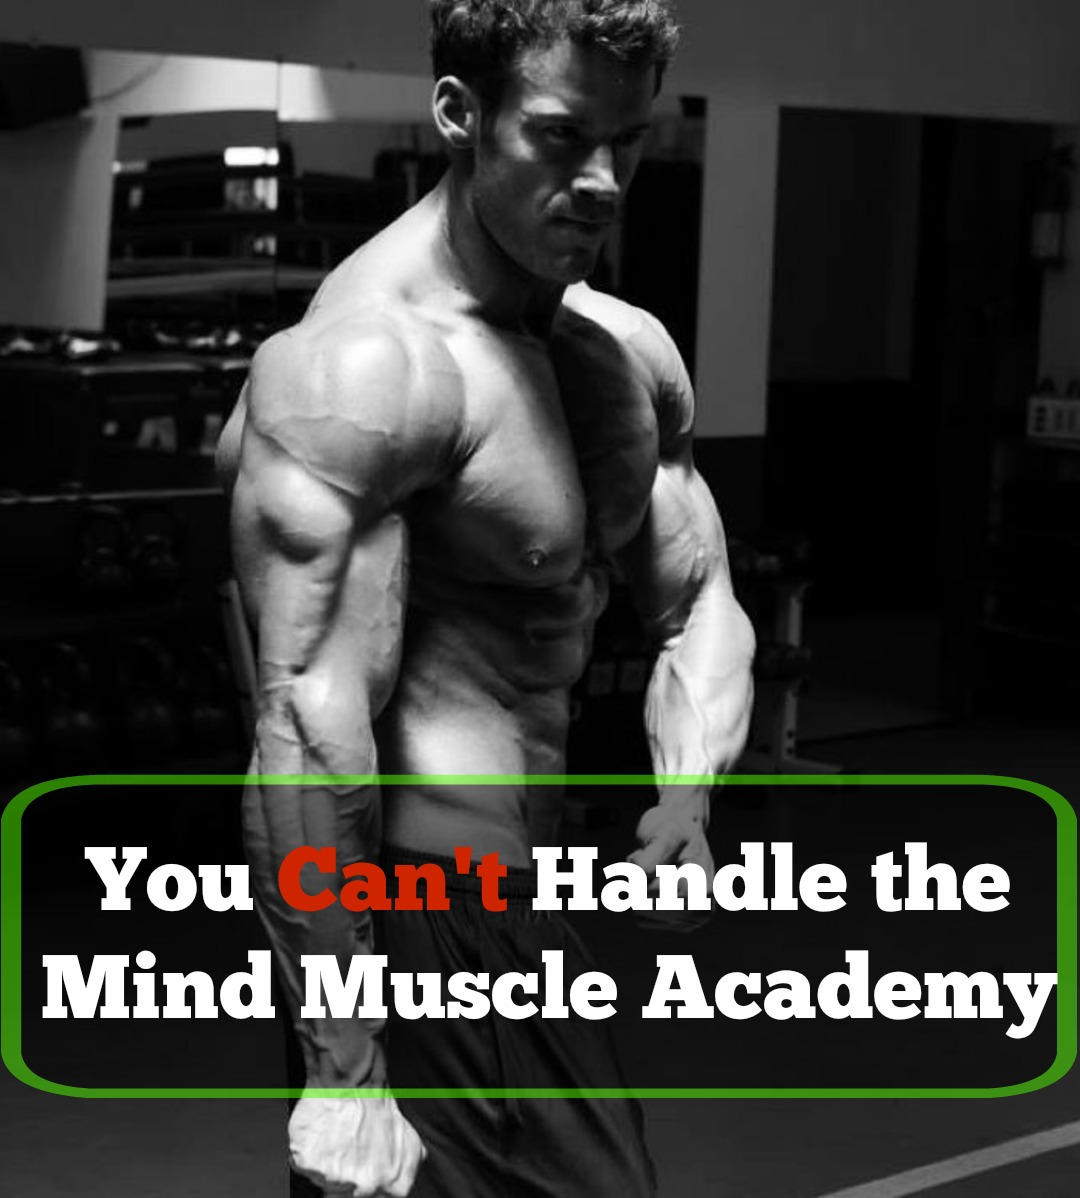 You Can't Handle the Mind Muscle Academy